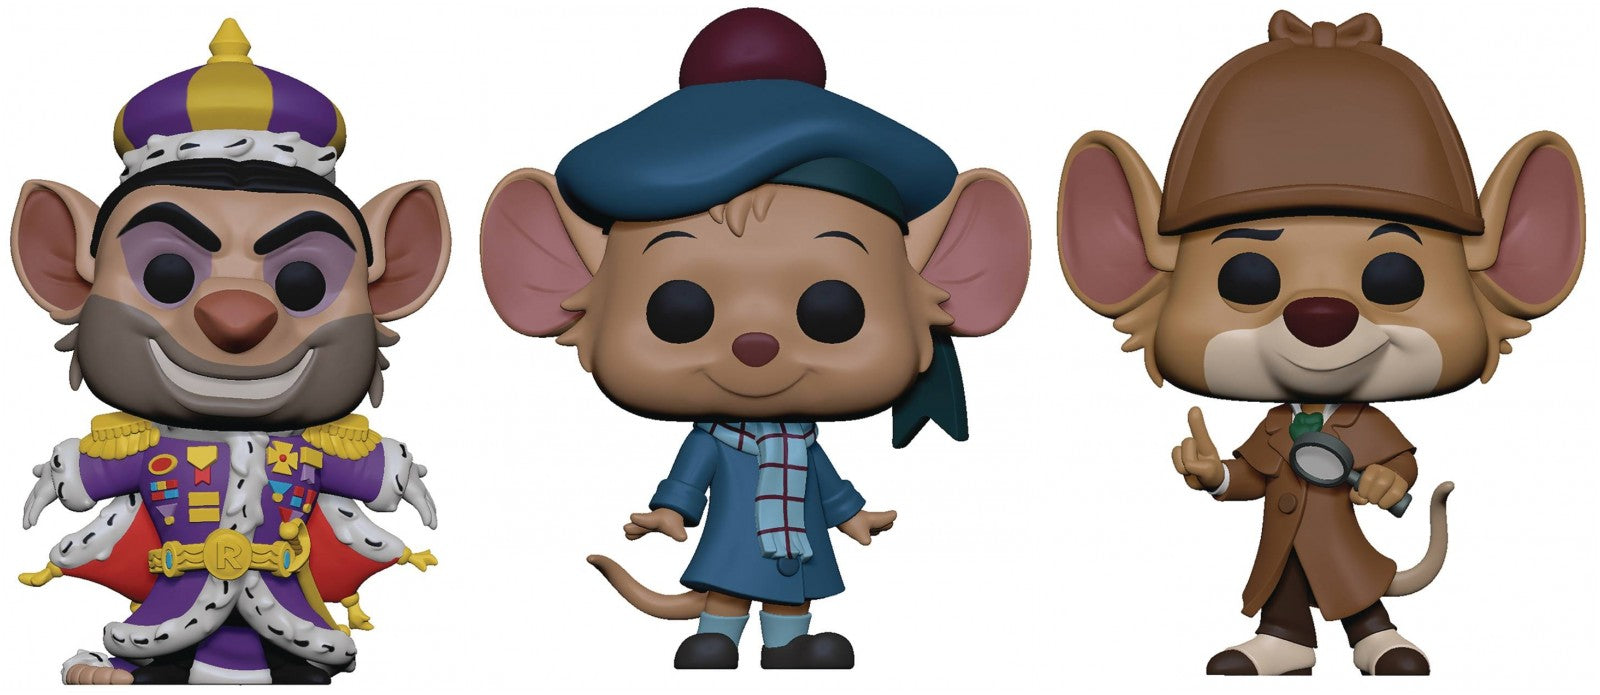 Funko Pop! Disney: The Great Mouse Detective (Set of 3)